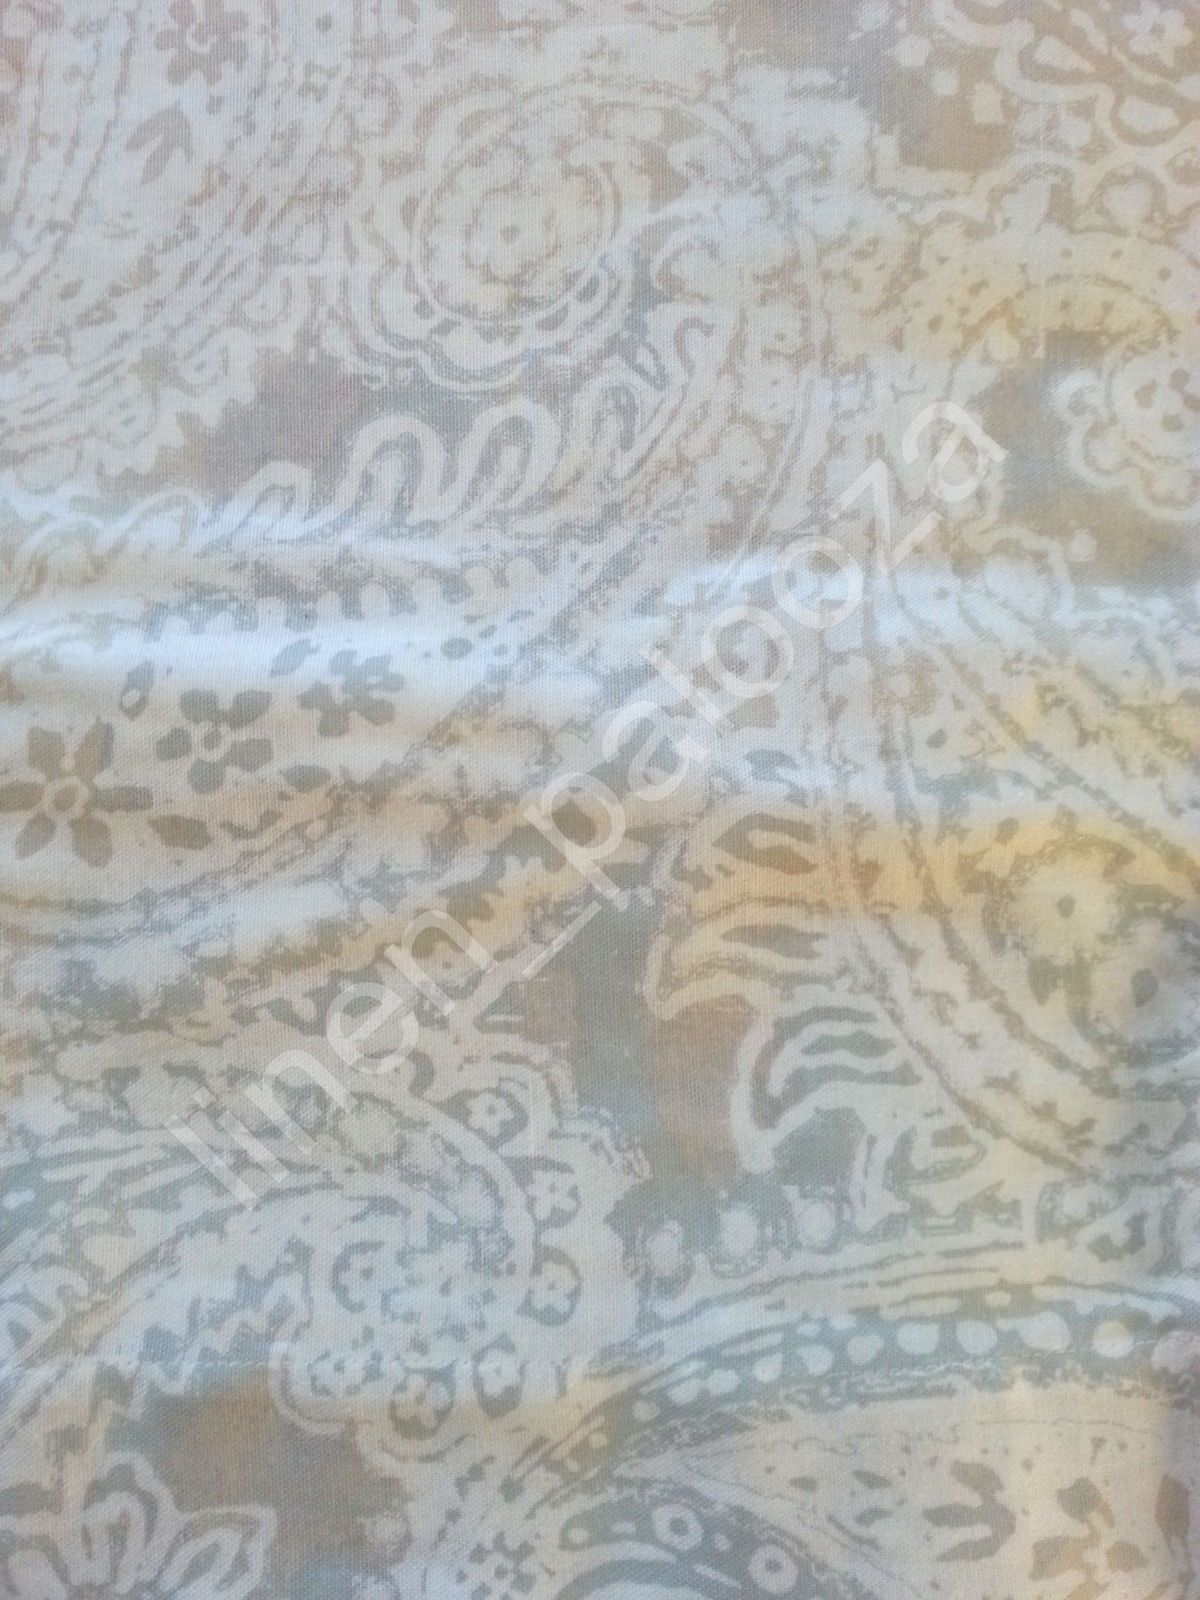 Tommy Hilfiger Mission Paisley Beige Gray Window Curtain Panels 50x96 Pair